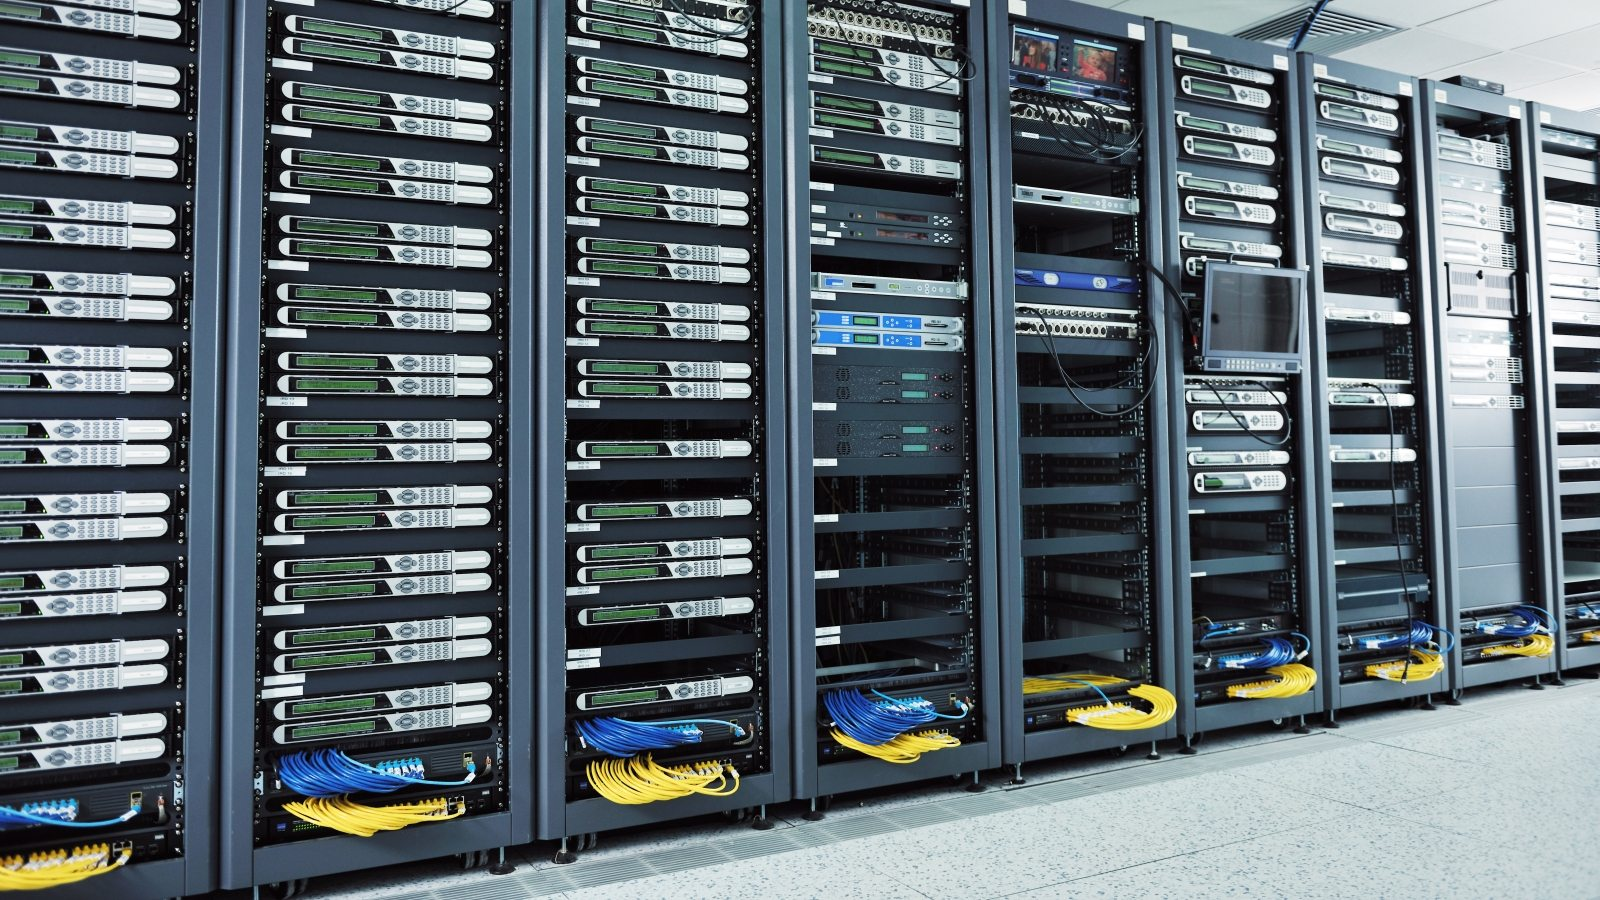 Install Industrial Computer Panels For Telecommunications Services